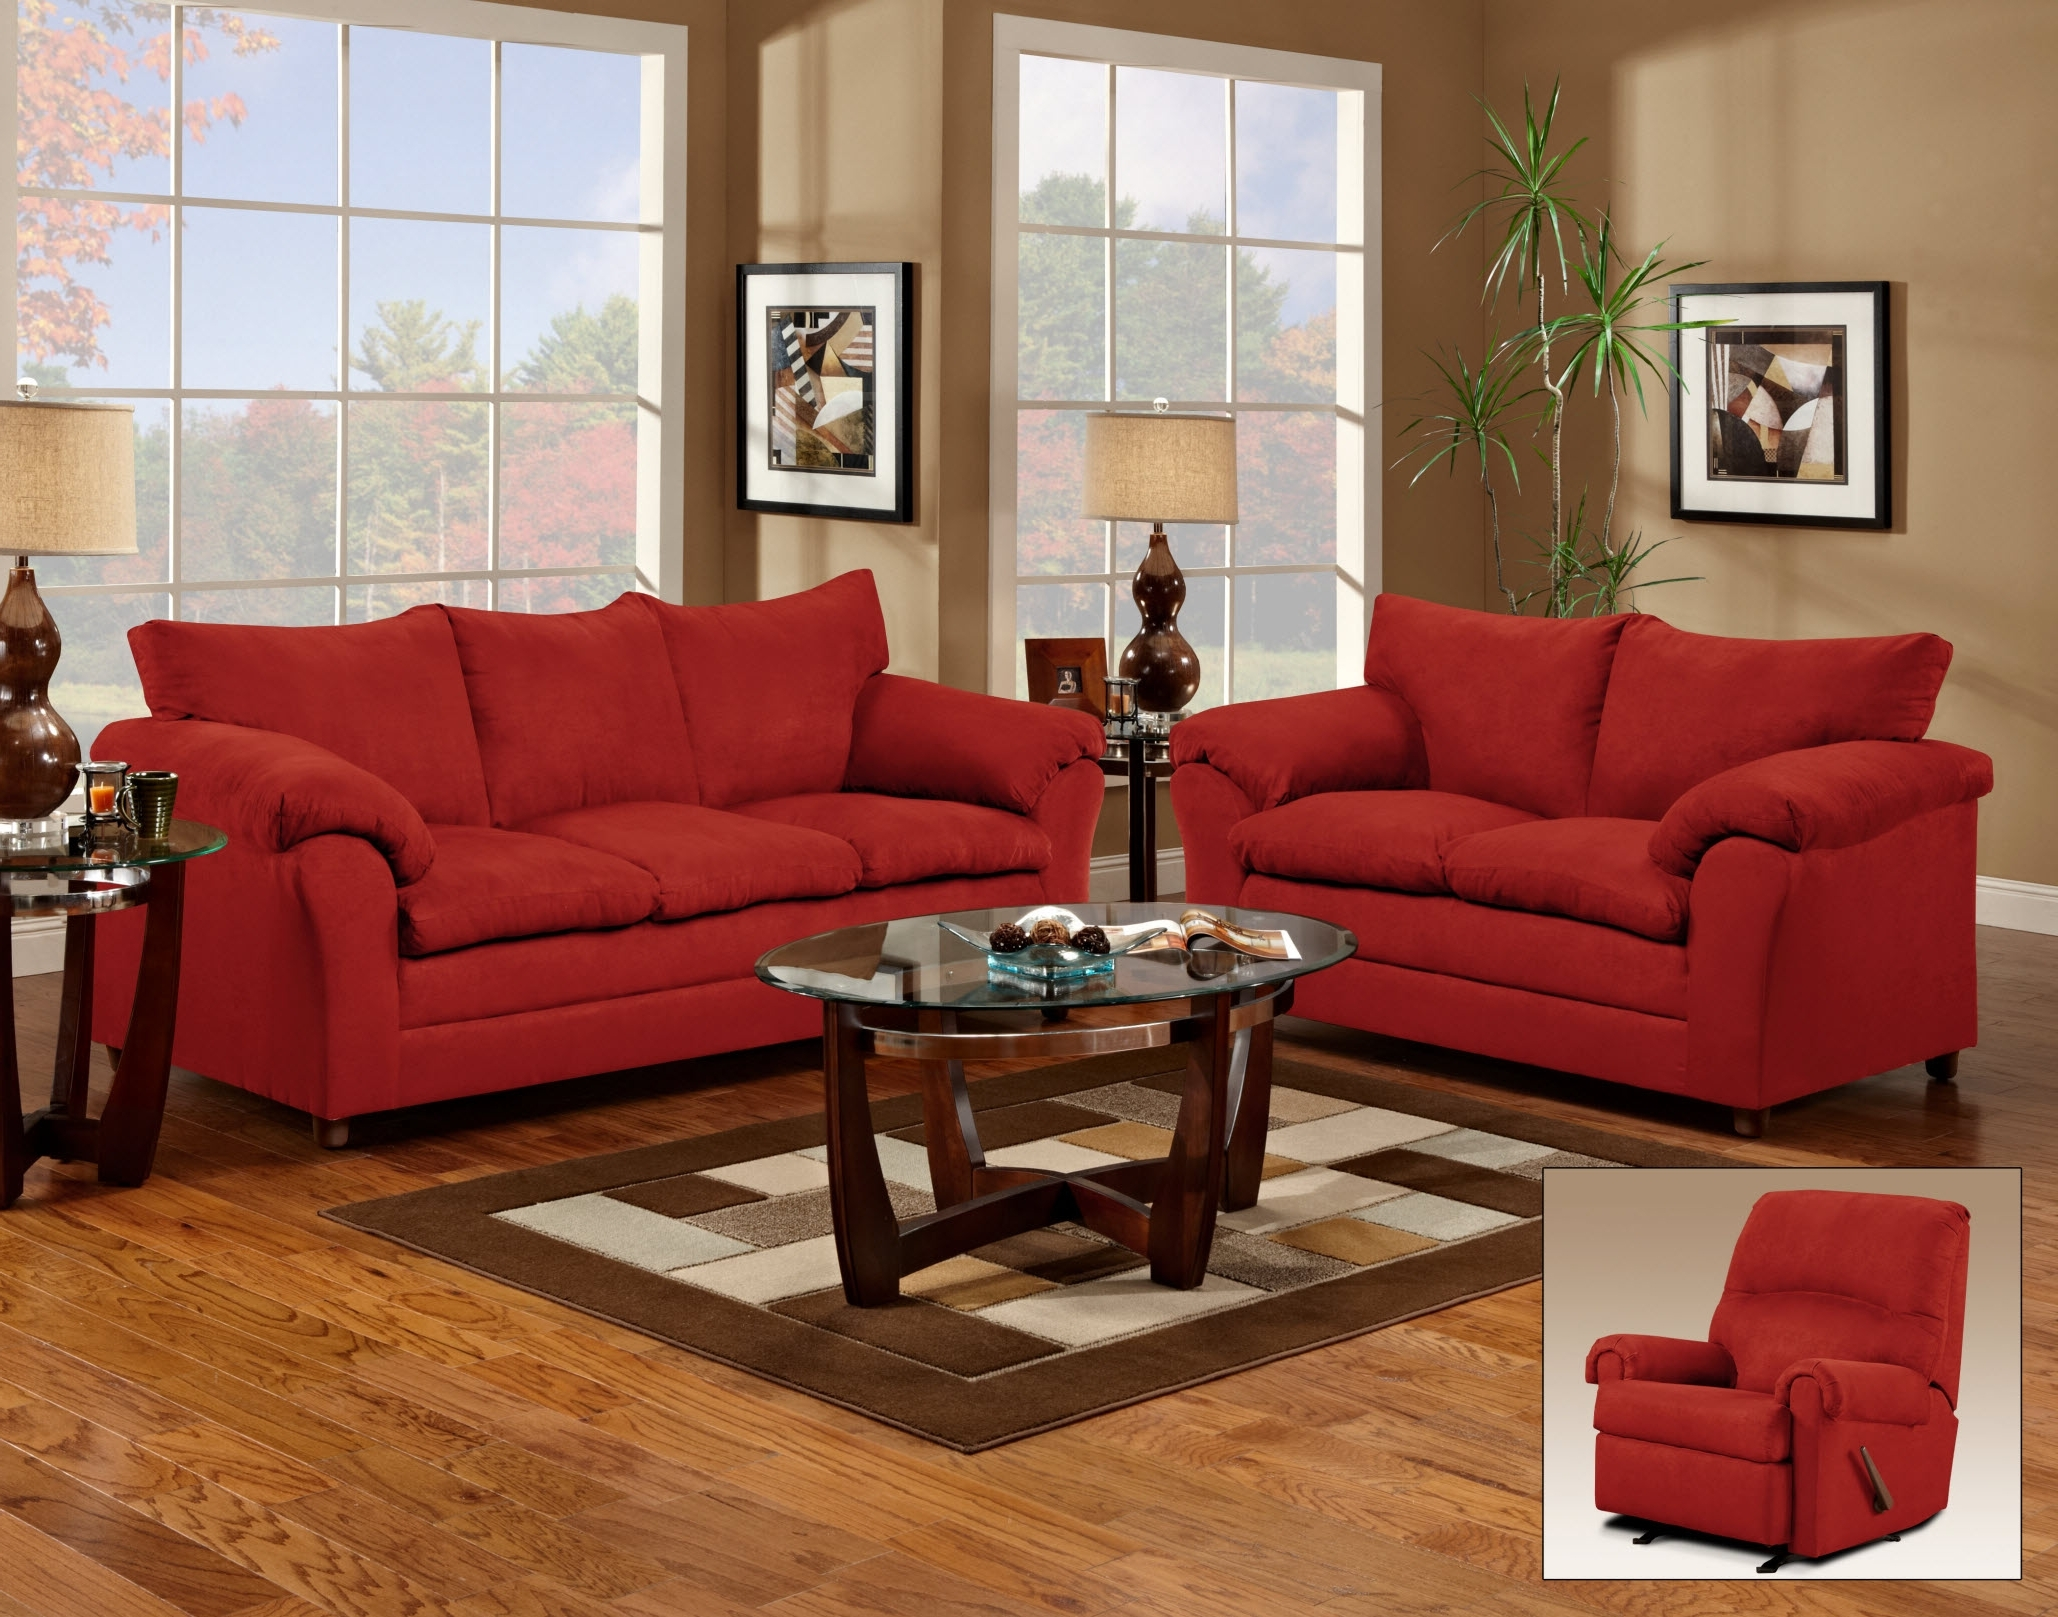 Well Known Microfiber Sectional Couch Microfiber Sectional Couch With Inside Red Leather Reclining Sofas And Loveseats (View 14 of 15)